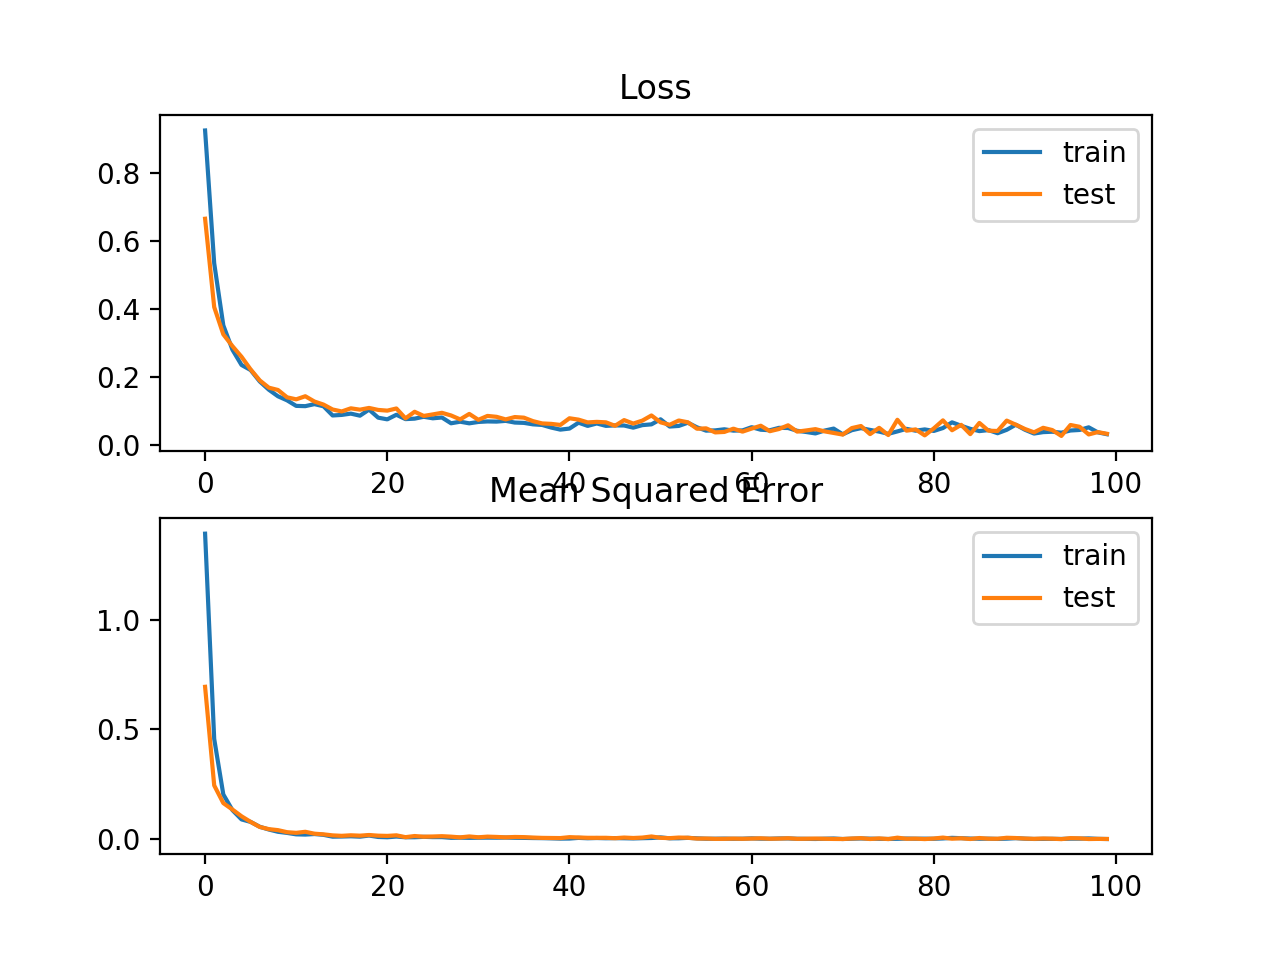 Line plots of Mean Absolute Error Loss and Mean Squared Error over Training Epochs